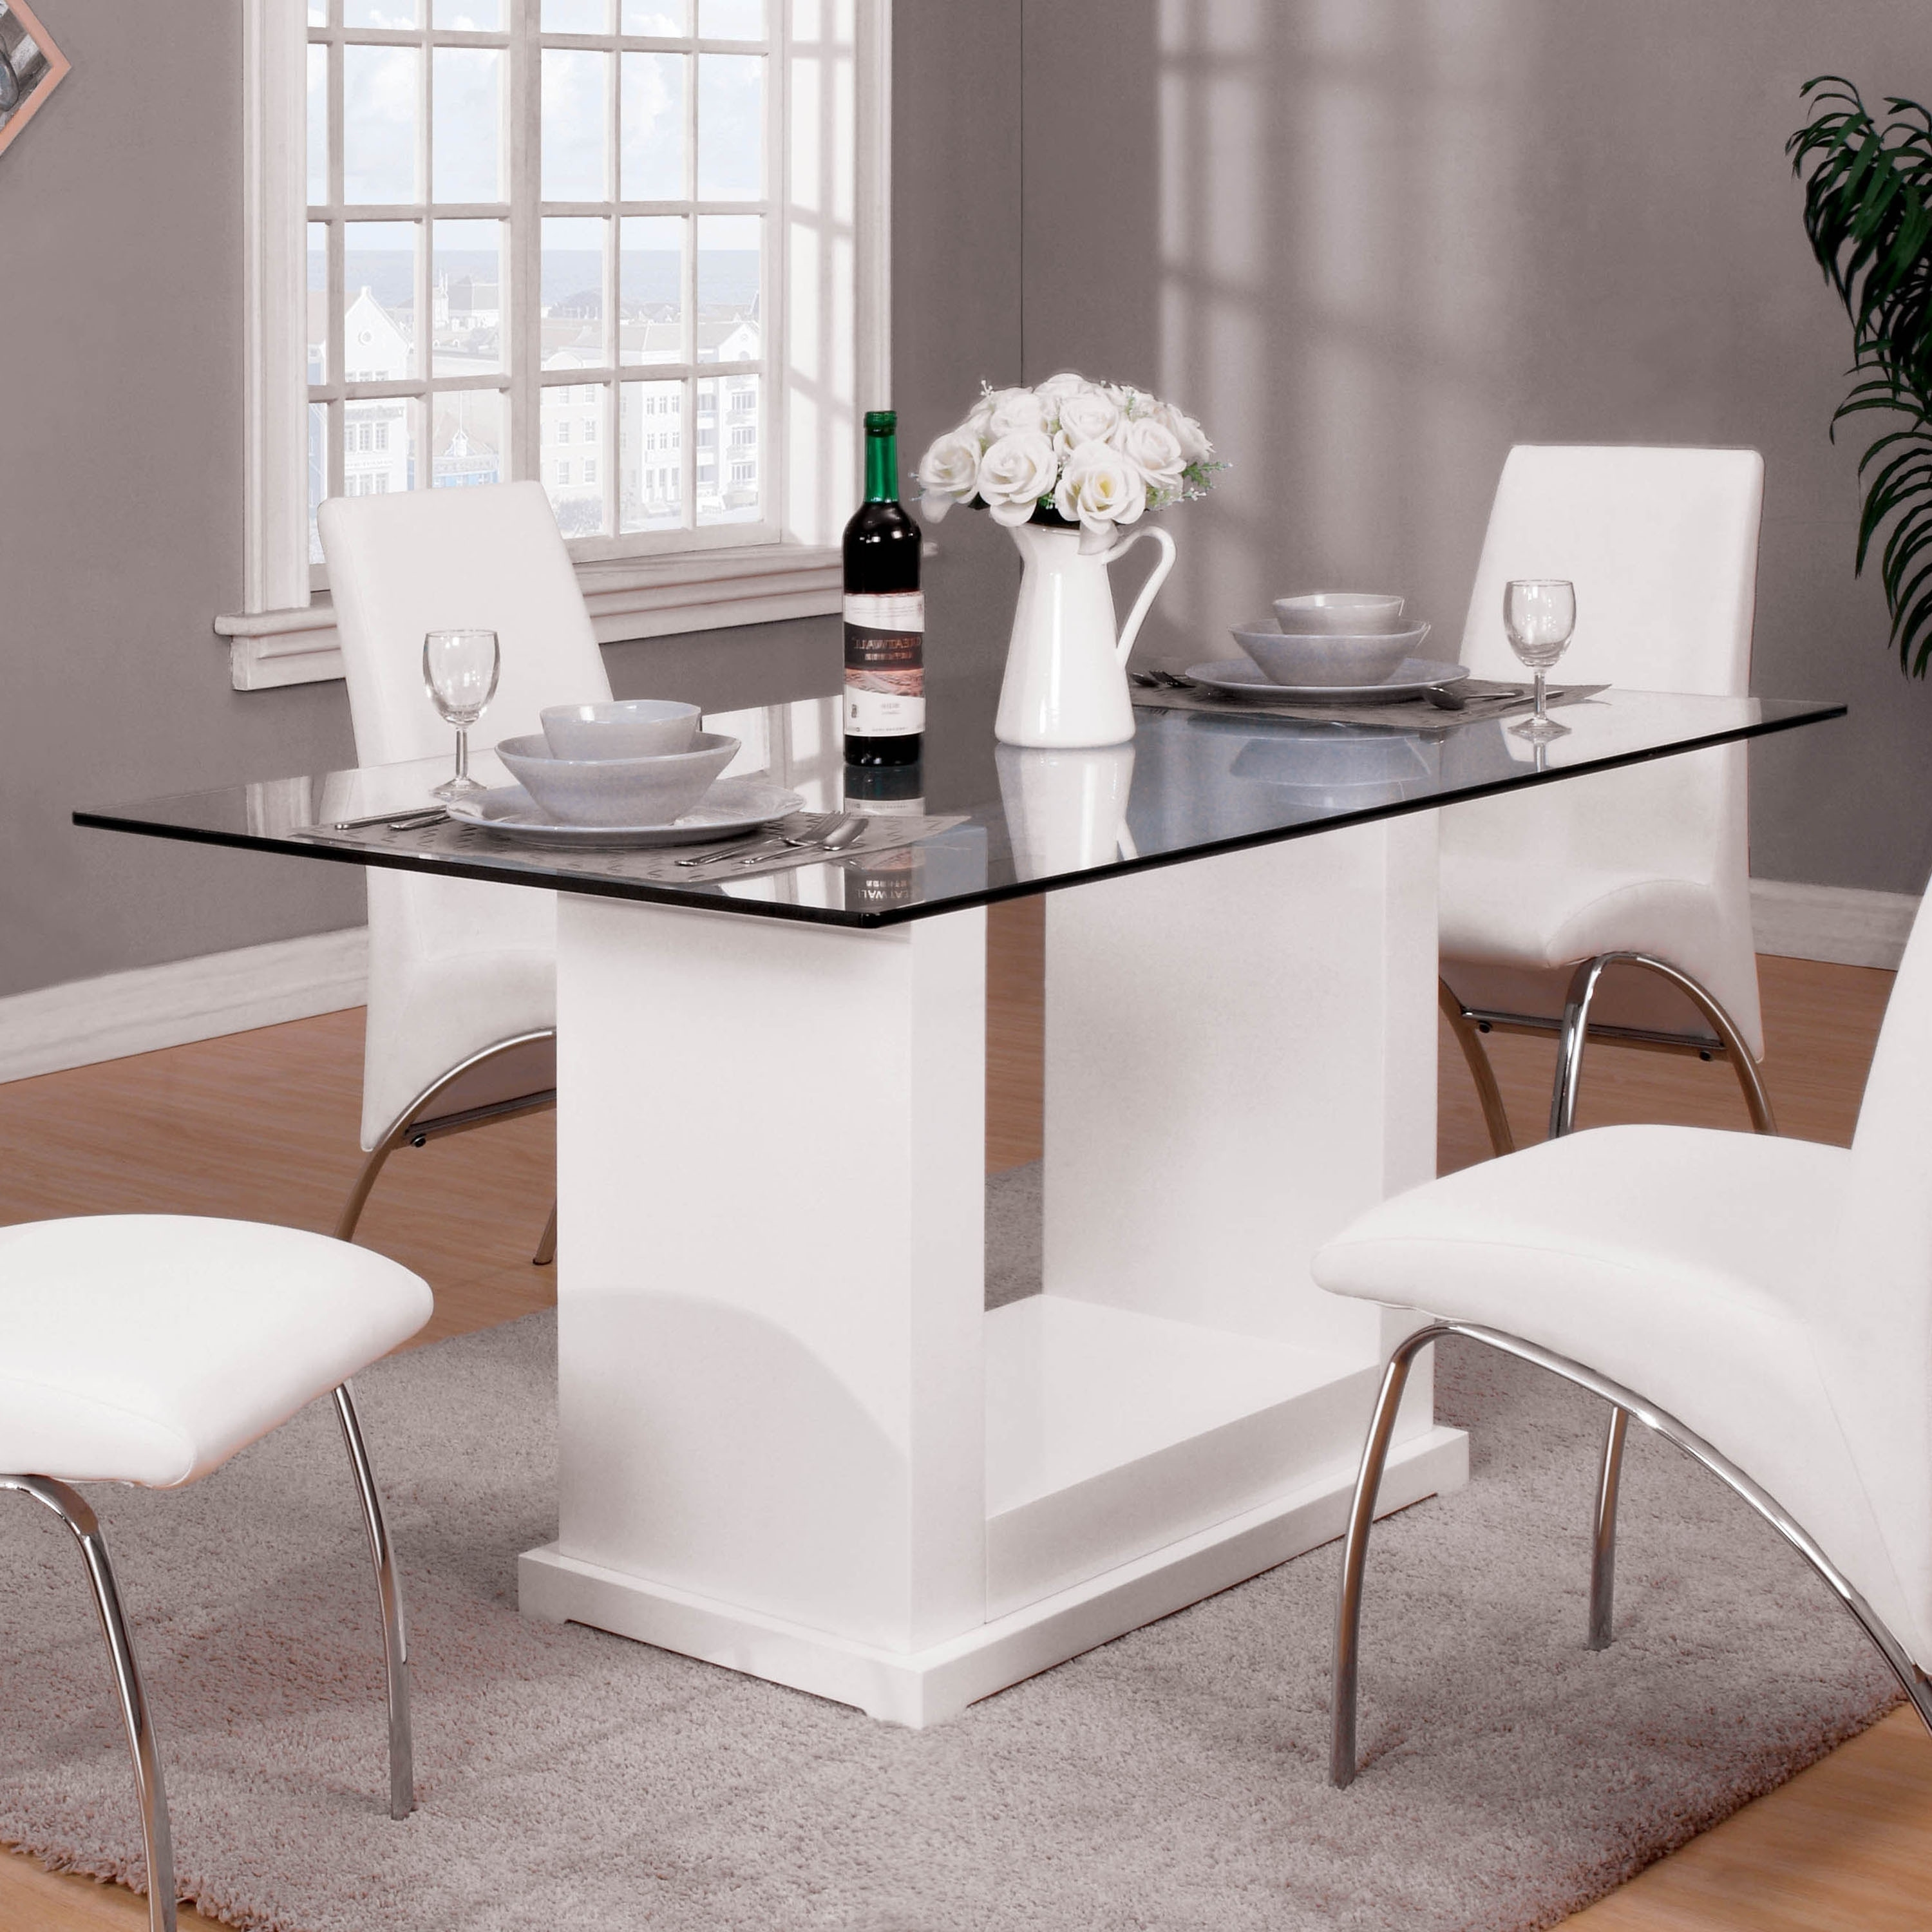 Shop Furniture Of America Jem Contemporary White Wood Dining Table On Sale Overstock 21501079